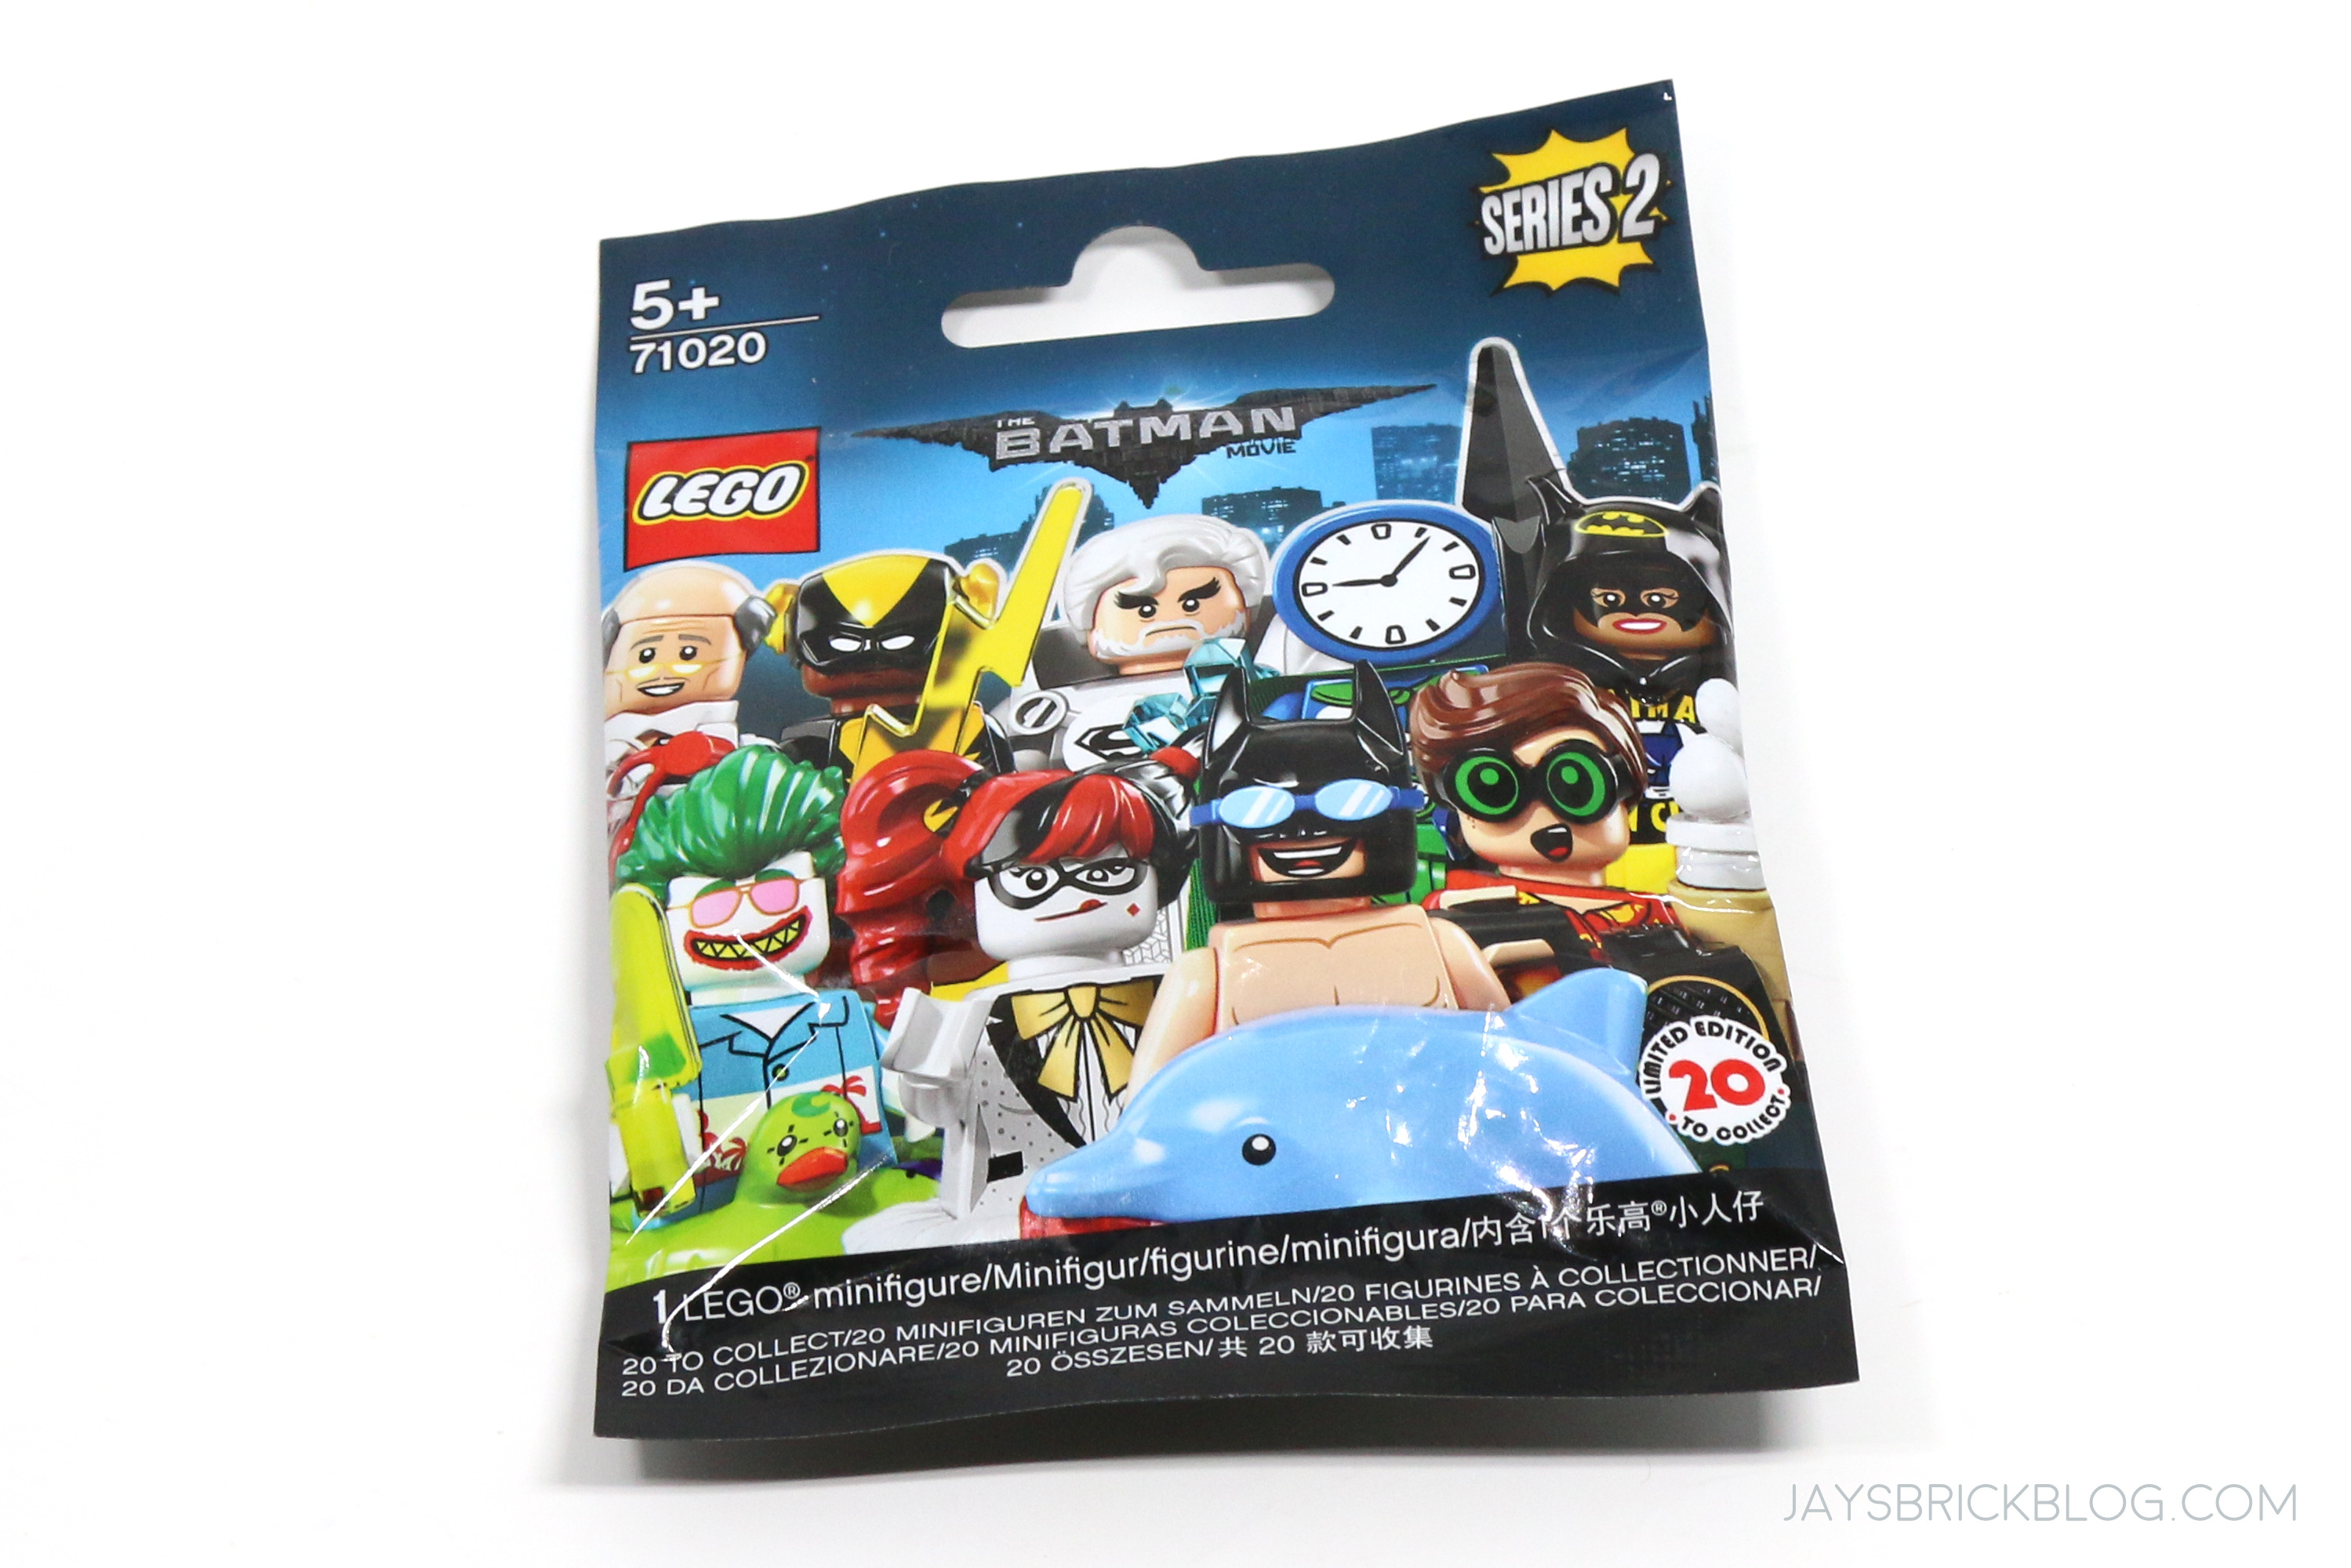 The LEGO Batman Movie Series 2 LEGO 71020 Friends are Family Alfred